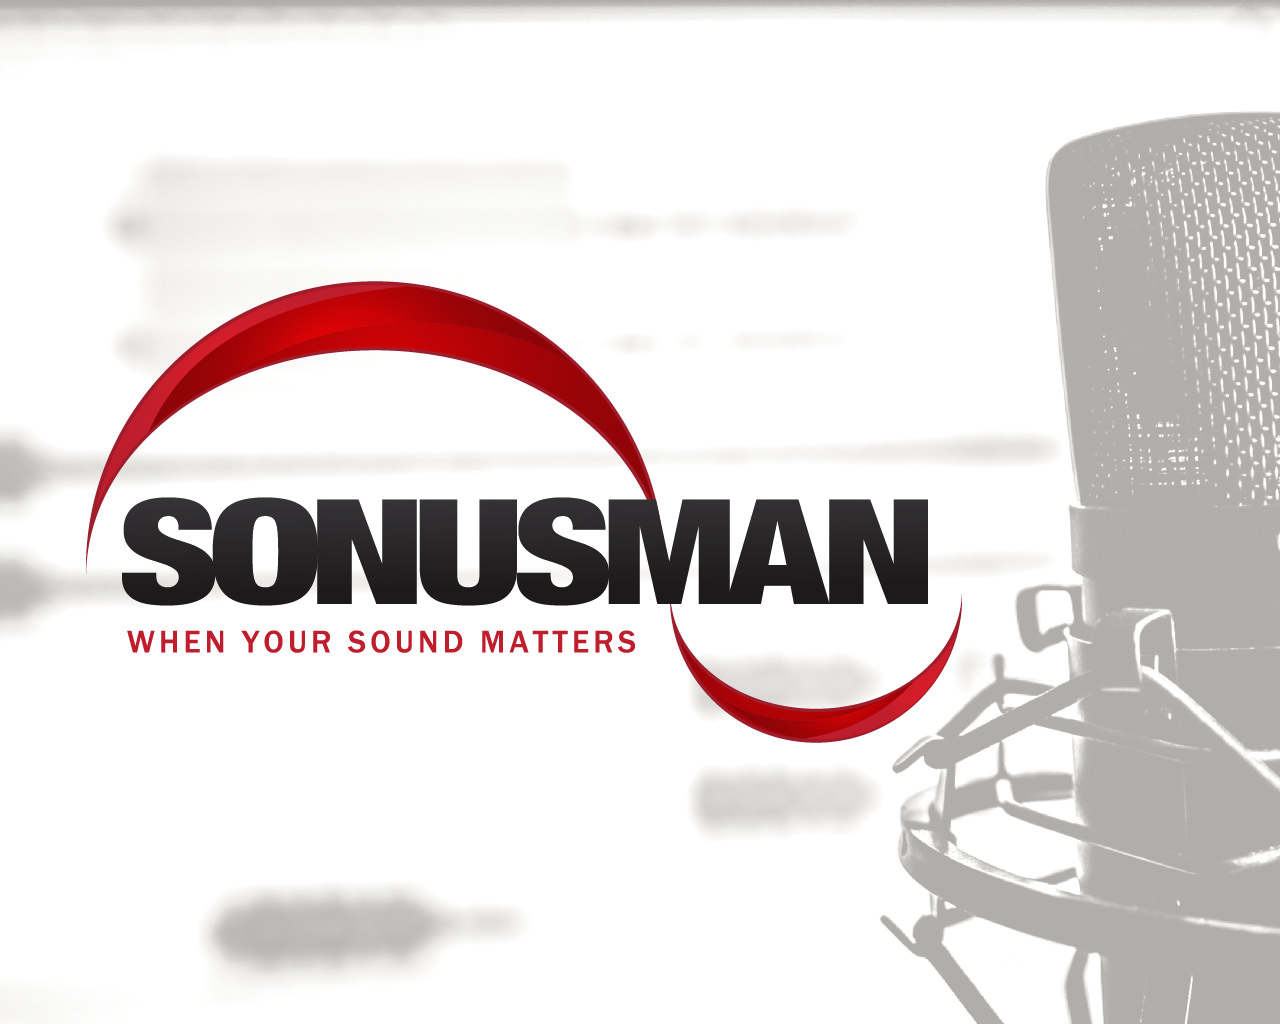 New Sonusman Logo Redesign by Patey Designs